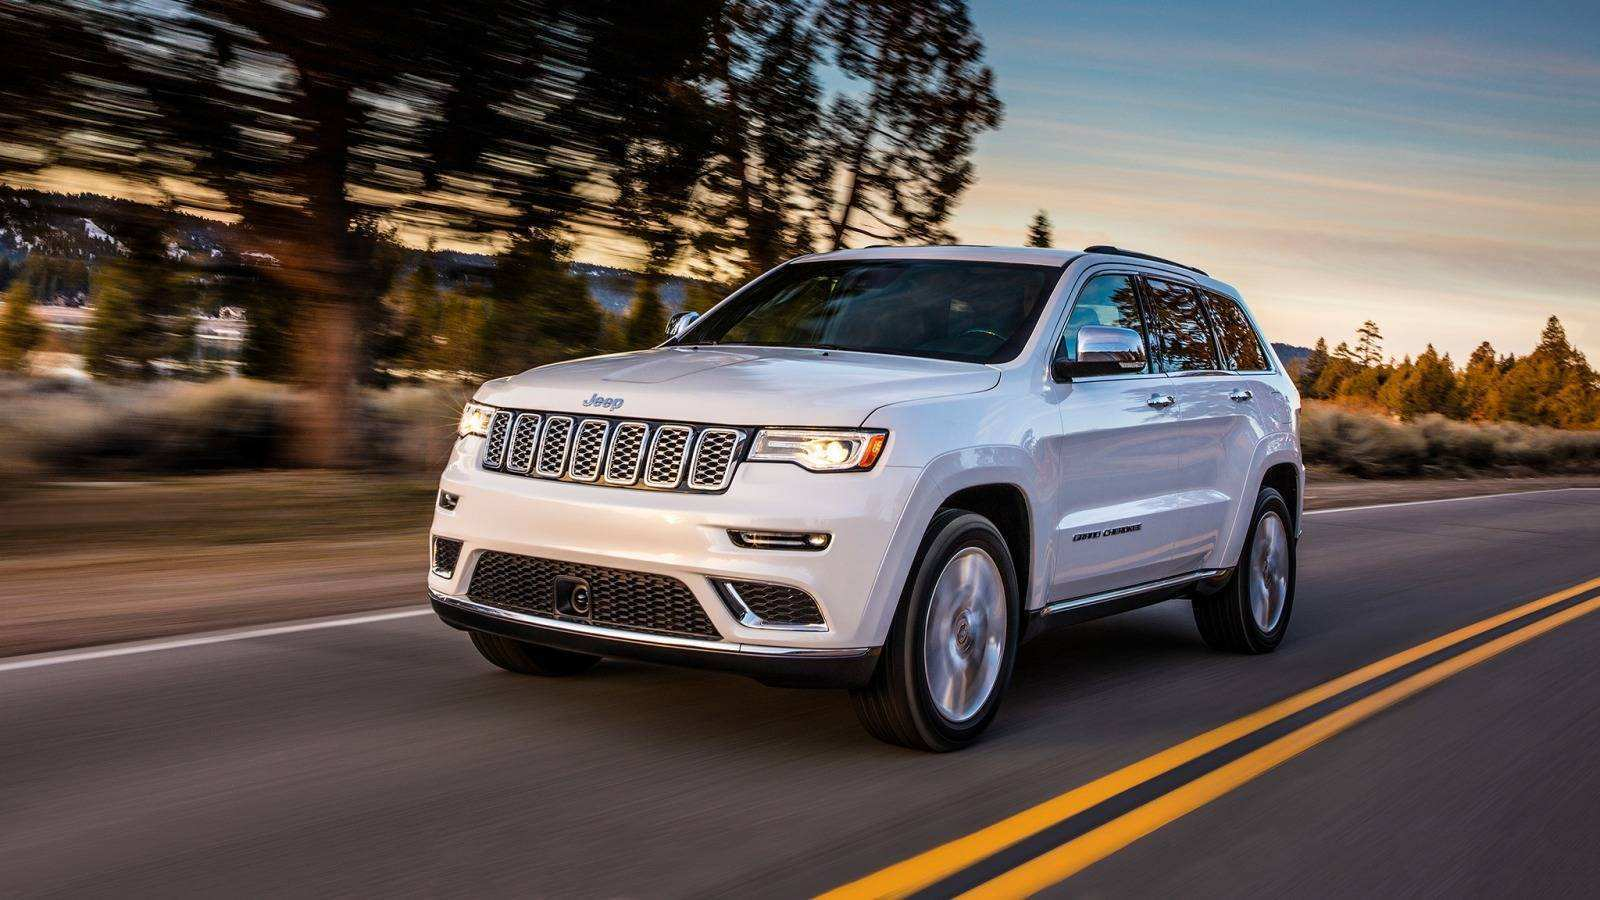 27 Great The Grand Cherokee Jeep 2019 Exterior And Interior Review Price and Review for The Grand Cherokee Jeep 2019 Exterior And Interior Review